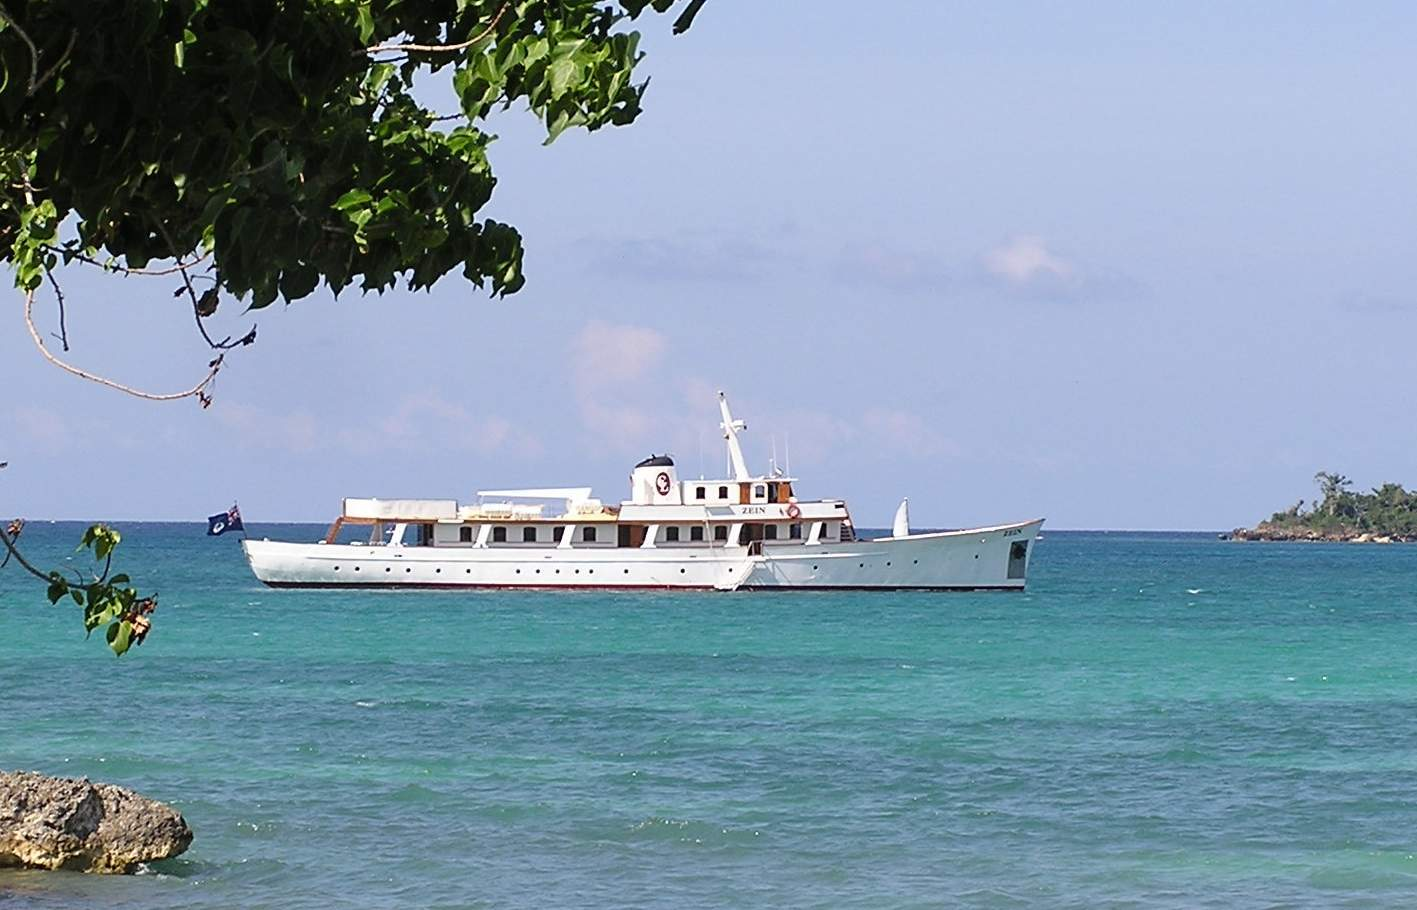 A photo of a white motor yacht sitting in a bay on a sunny day with a tree just showing to the left hand side.